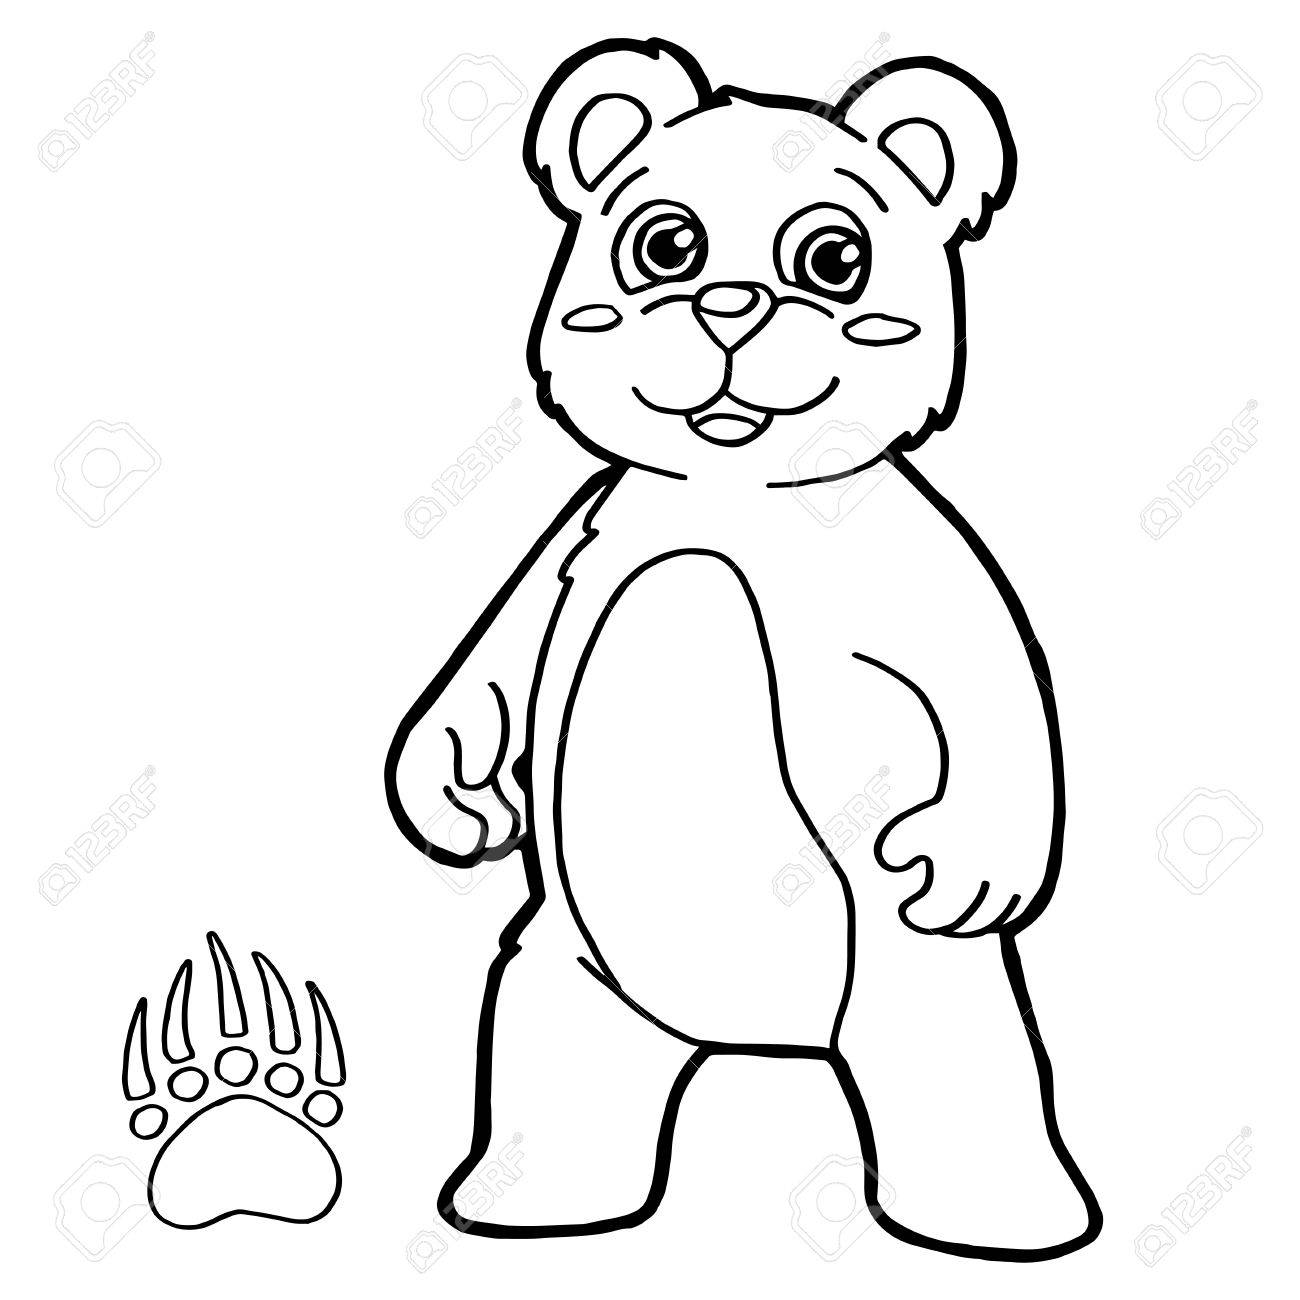 Pawprint Coloring Page - Free Others Coloring Pages ... | 1300x1300